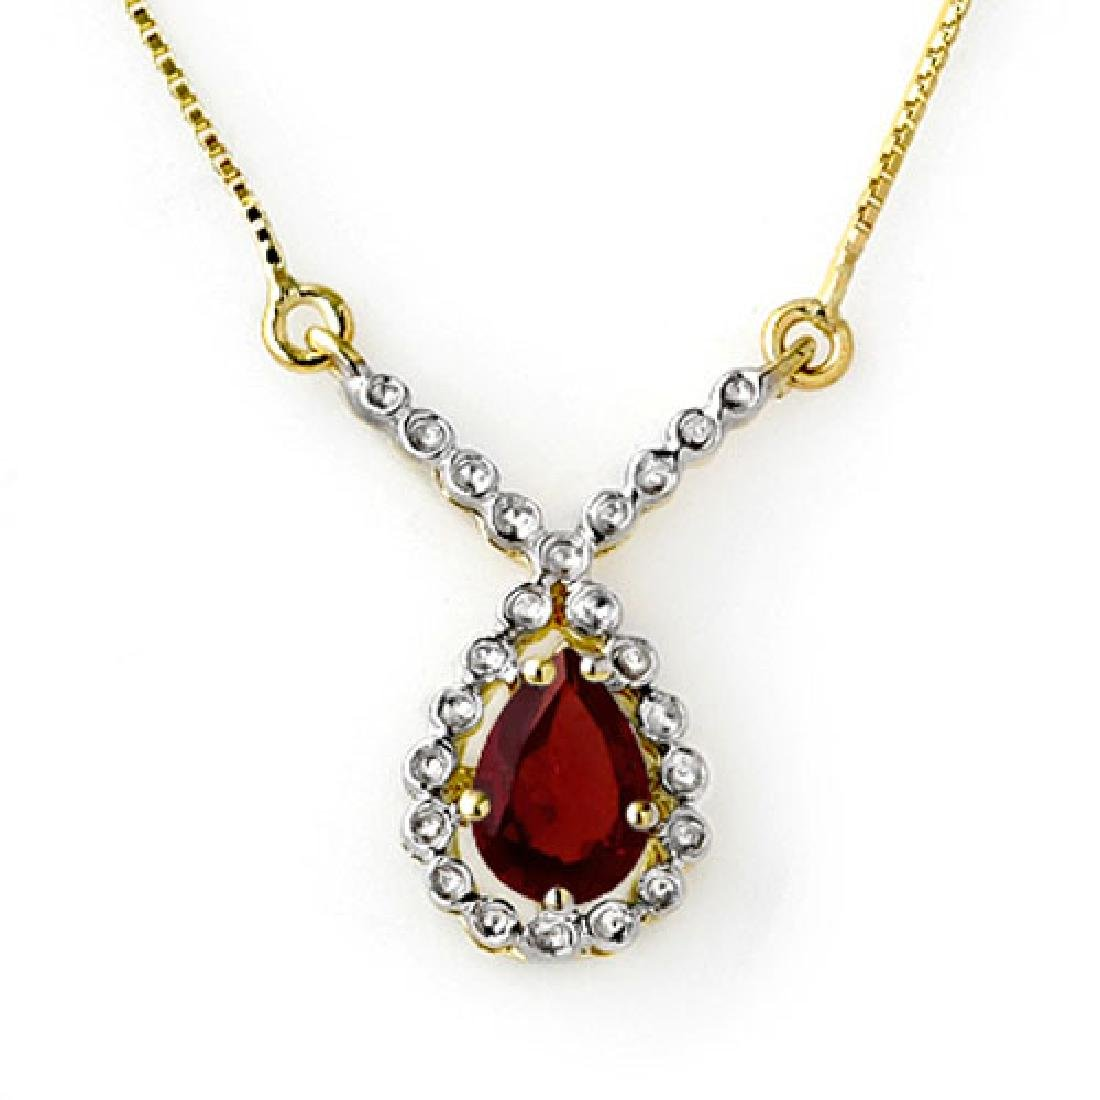 0.90 CTW Garnet Necklace 10K Yellow Gold